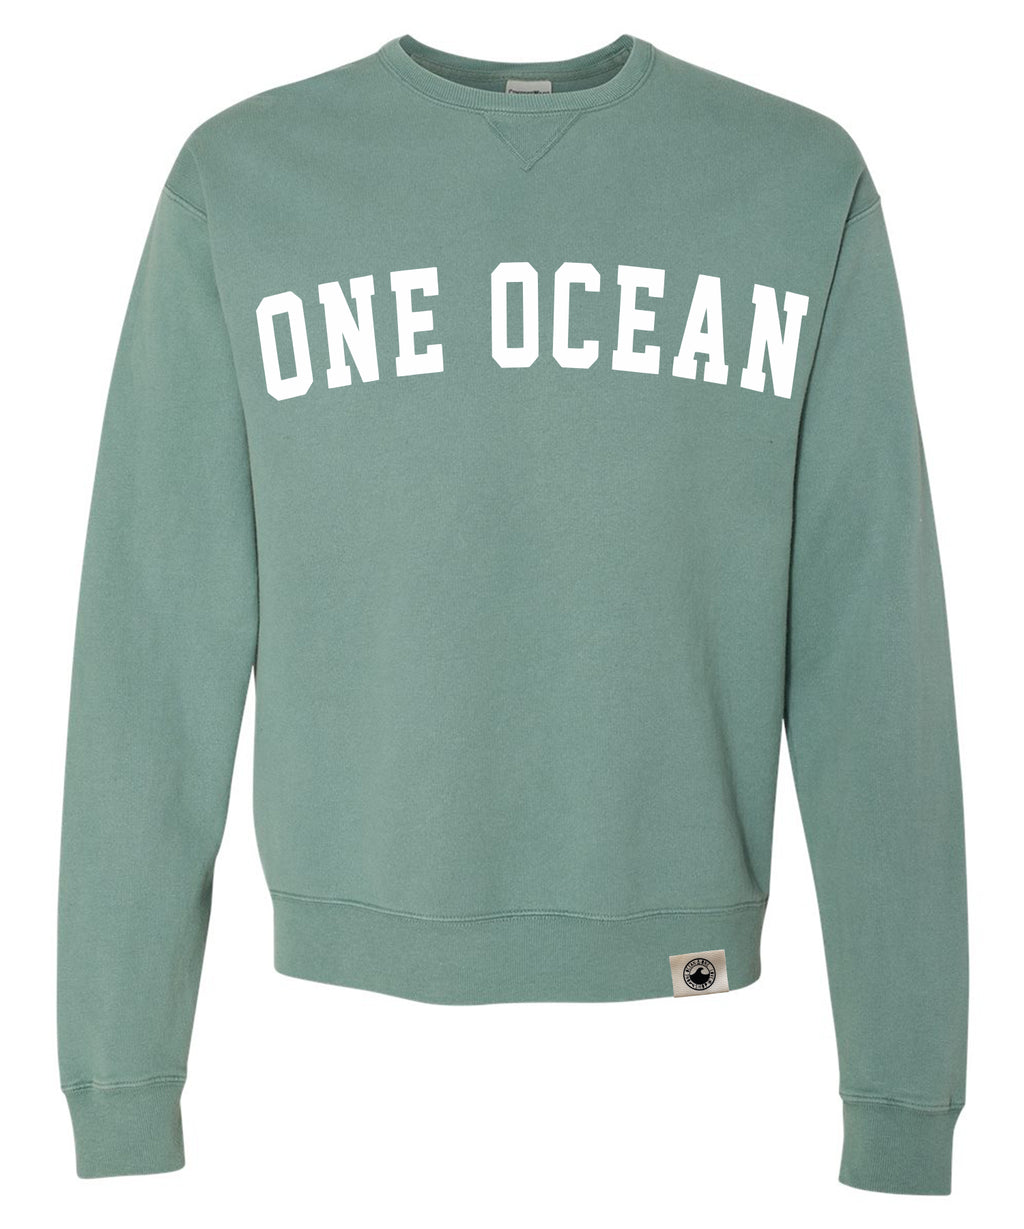 One Ocean Crewneck Sweatshirt